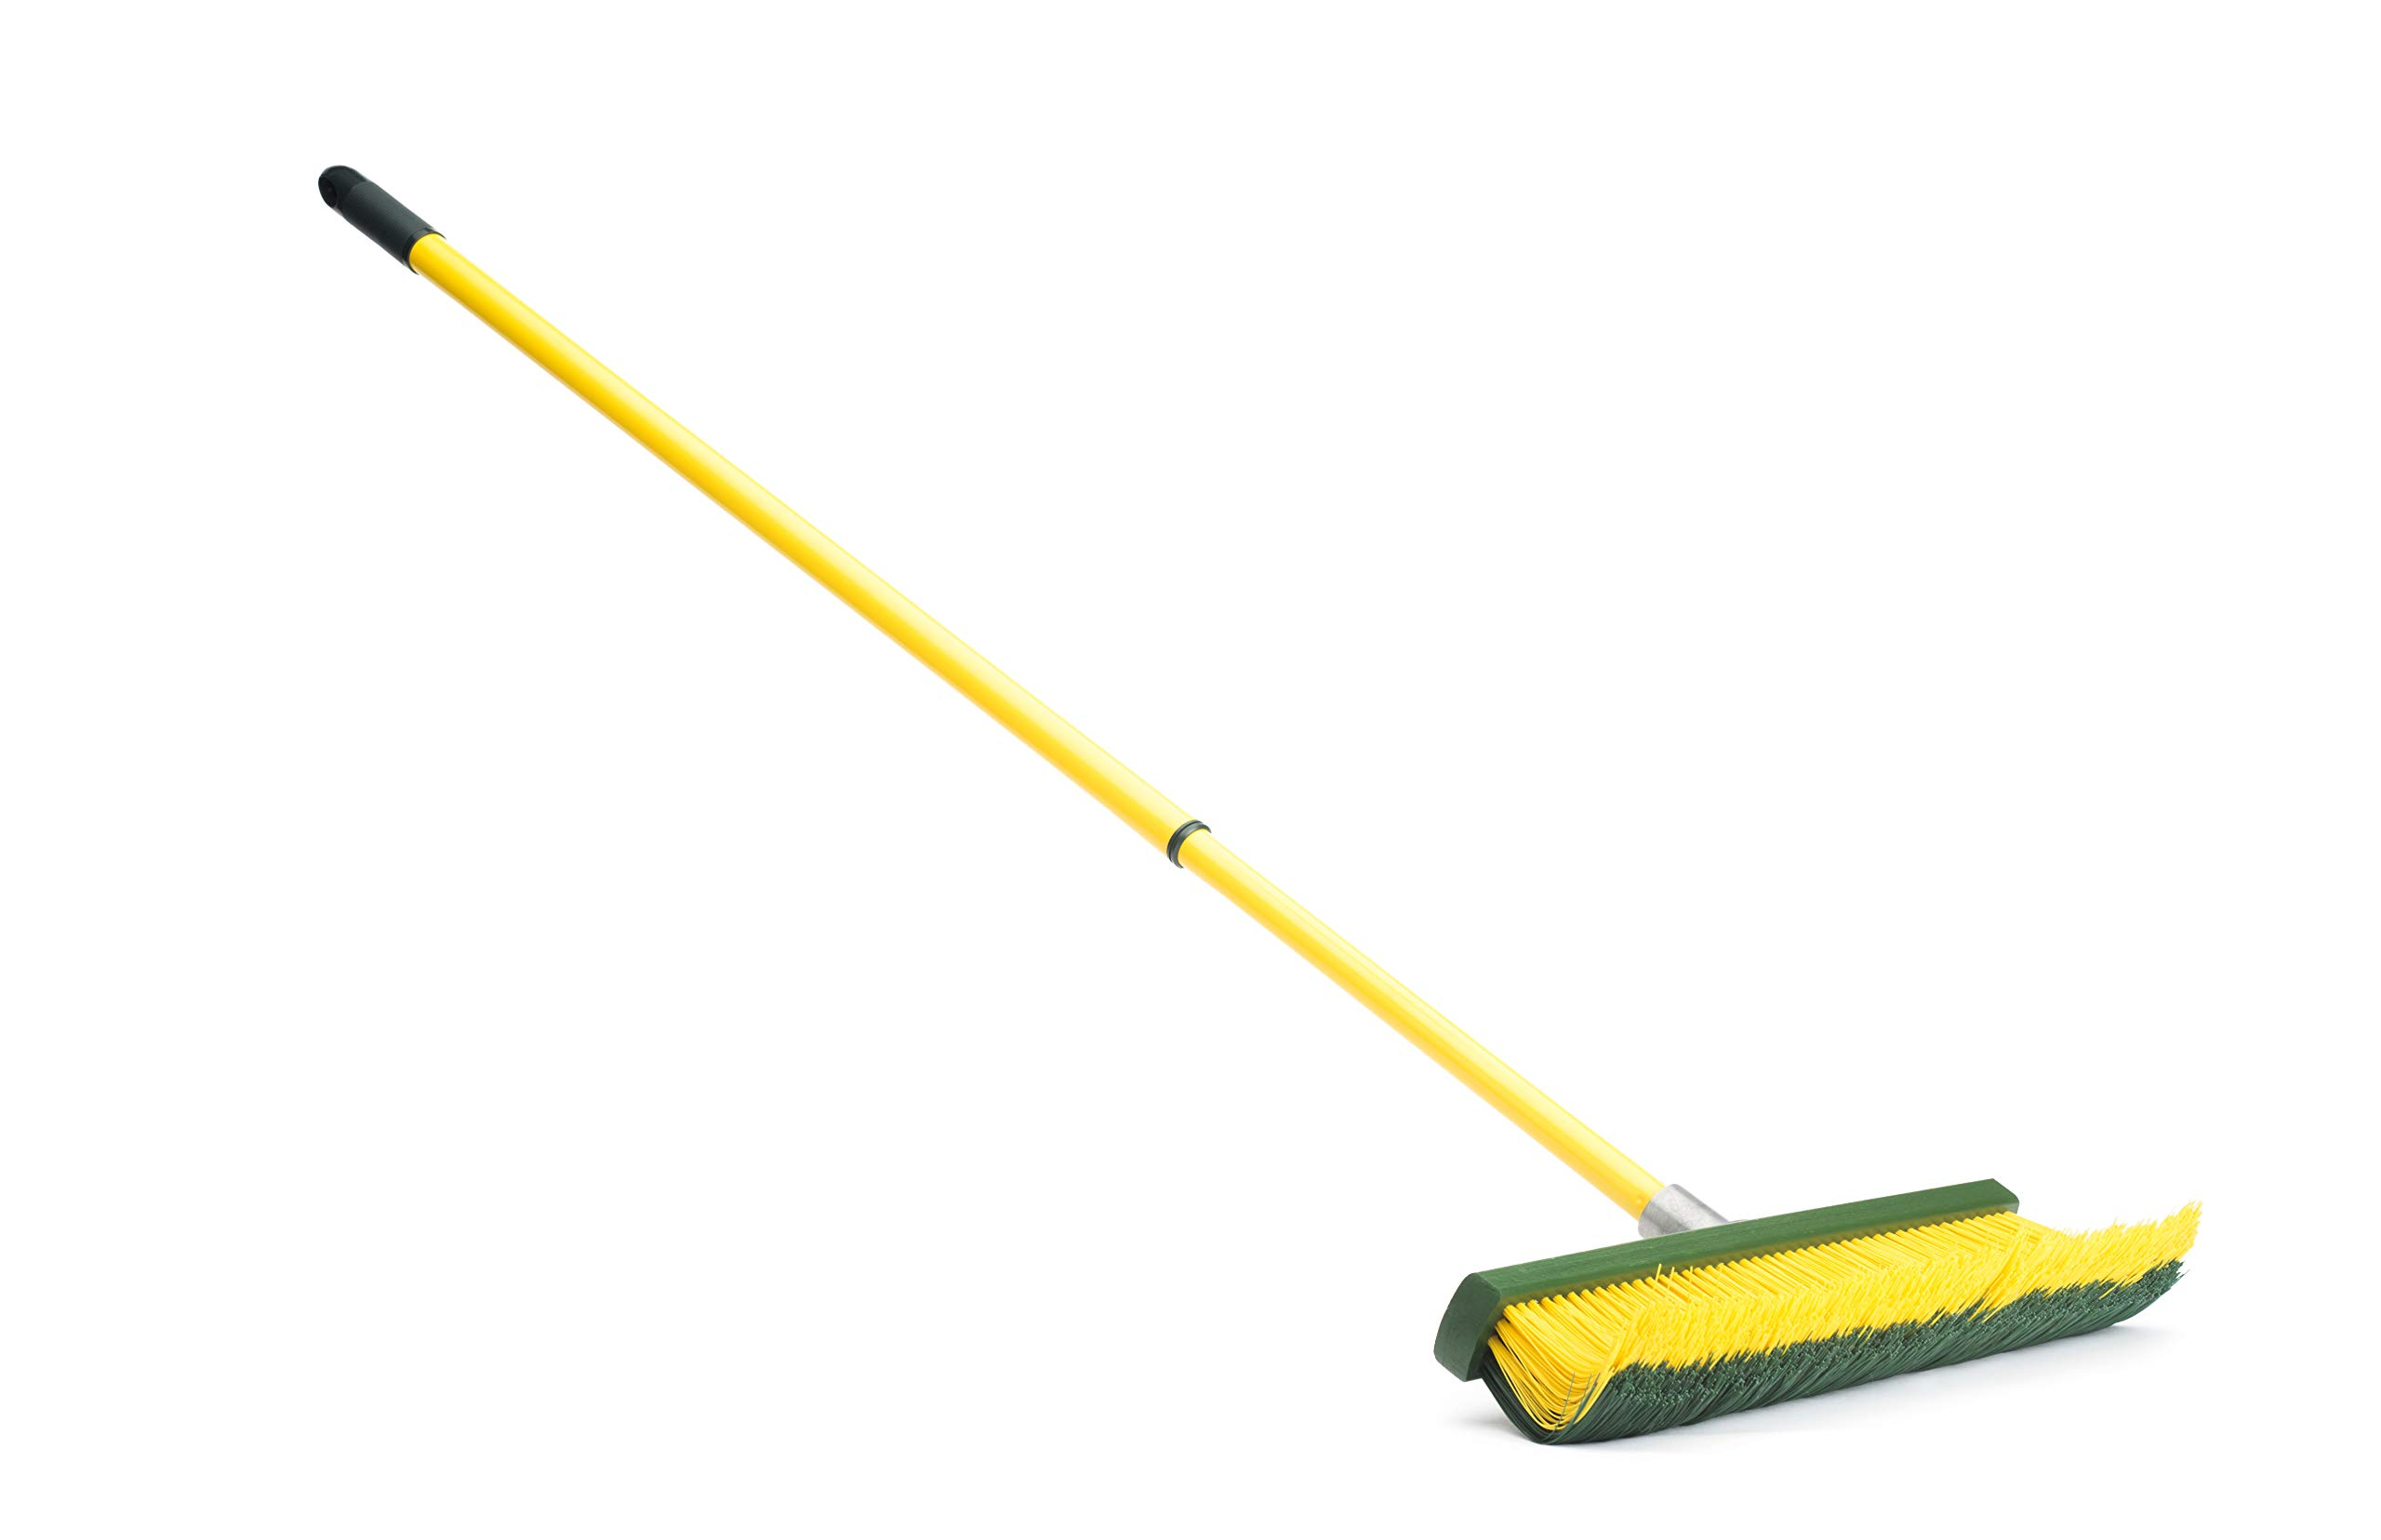 Renegade Broom, 18 inch by The Handy Camel (Image #1)